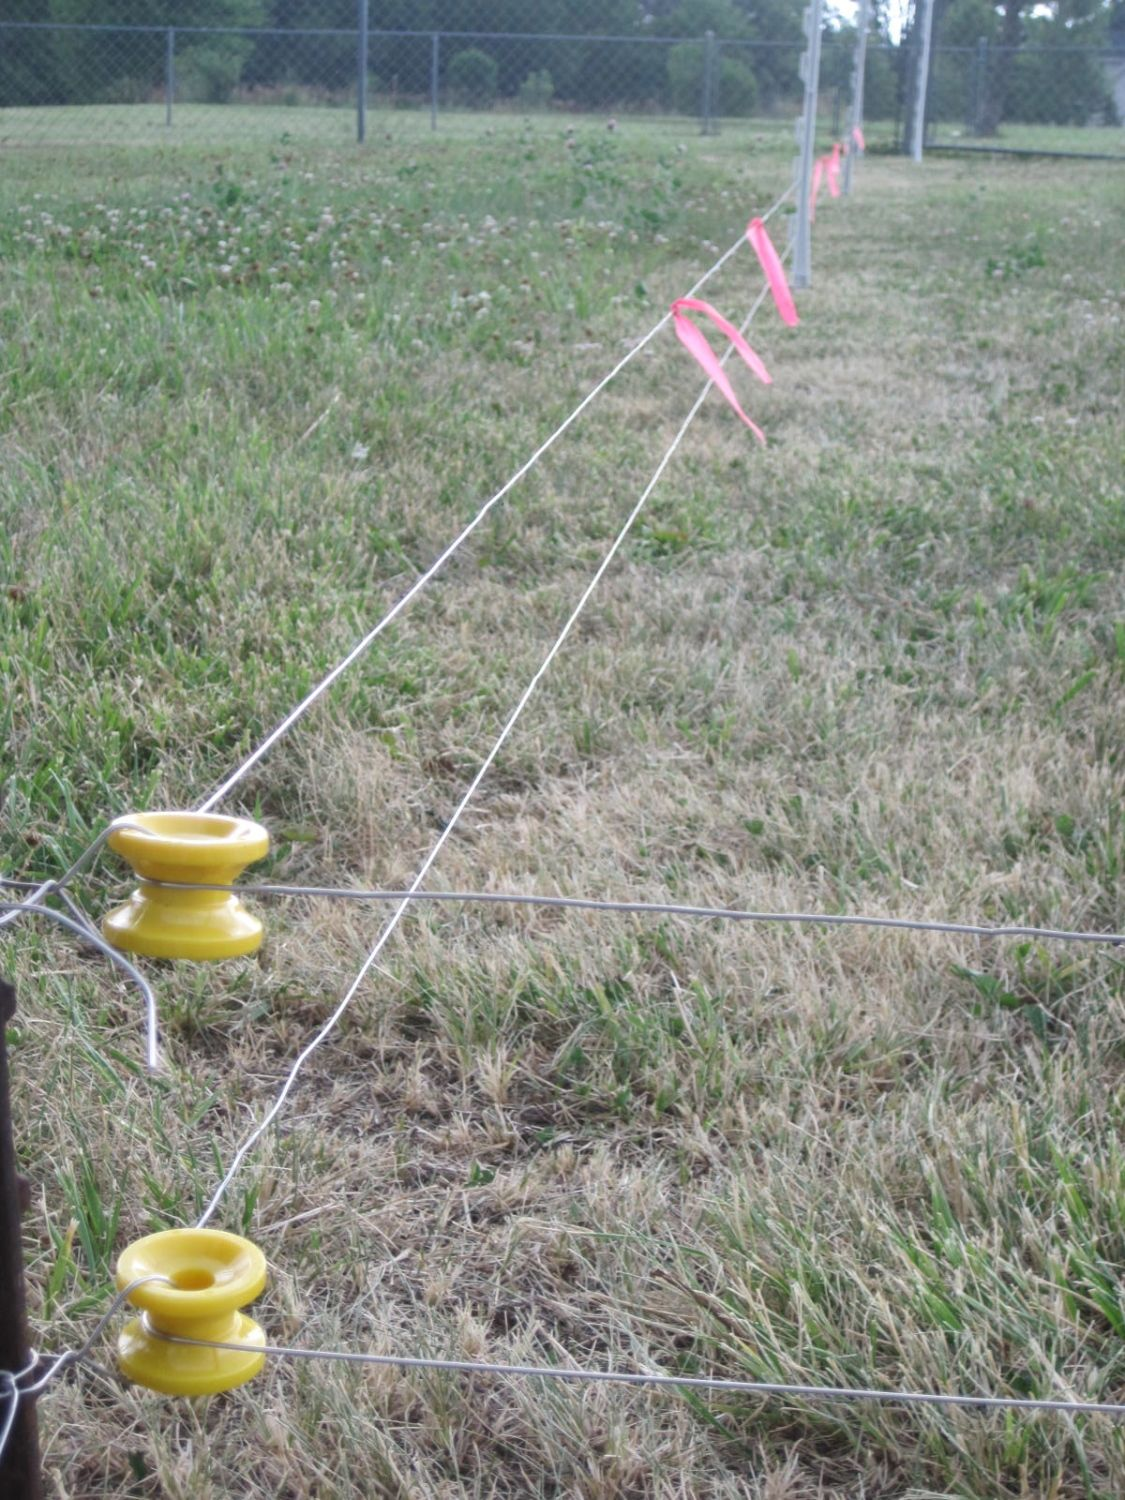 A Treatise On Electric Fences For Poultry Backyard Chickens Fence Wires Im Using 17 Gauge Aluminum Wire The Lowest Set About 5 Inches Off Ground And Is Suspended By White Plastic Step In Posts